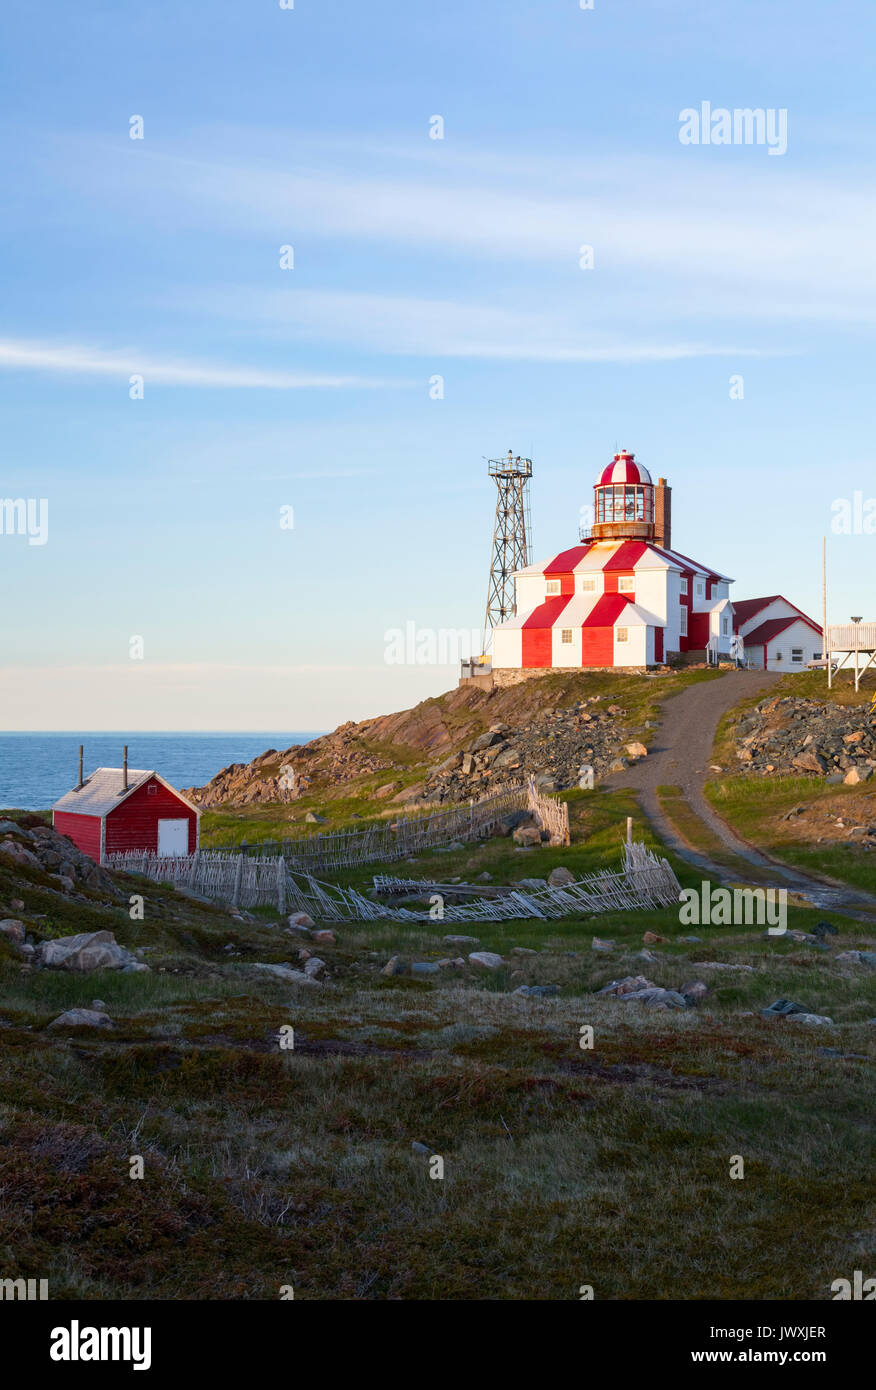 The Cape Bonavista Lighthouse seen here at sunset was in operation from 1842-1962. It is now a museum and is a Provincial Historic Site. - Stock Image